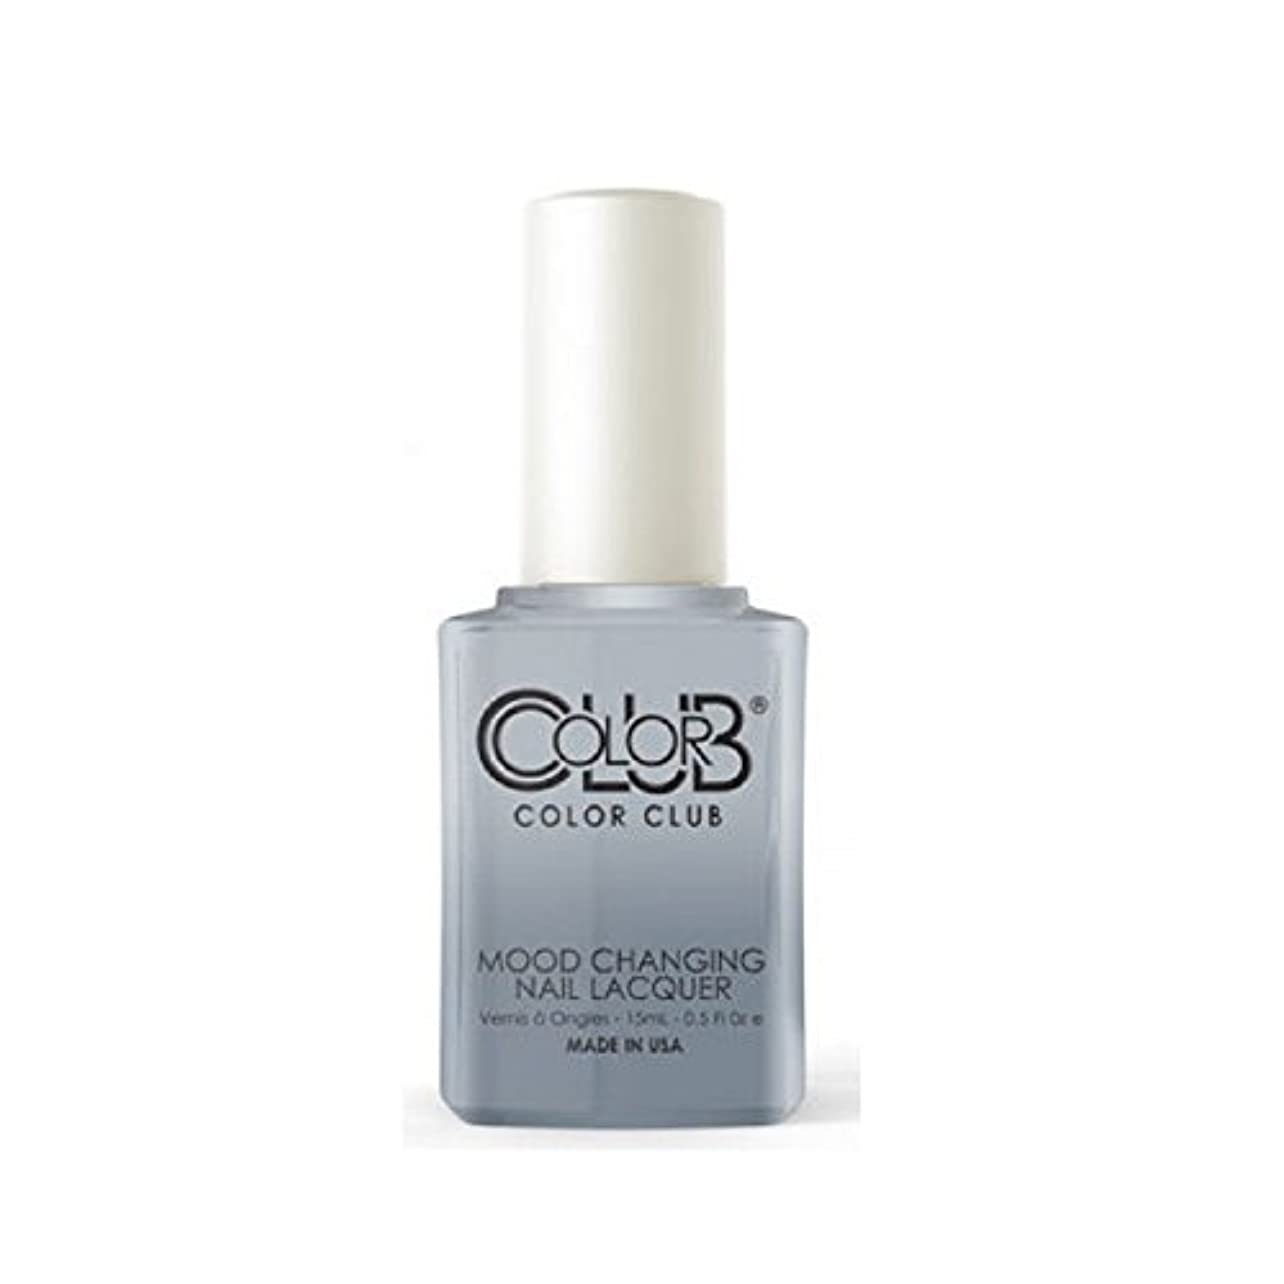 シルク算術帰るColor Club Mood Changing Nail Lacquer - Head in the Clouds - 15 mL / 0.5 fl oz